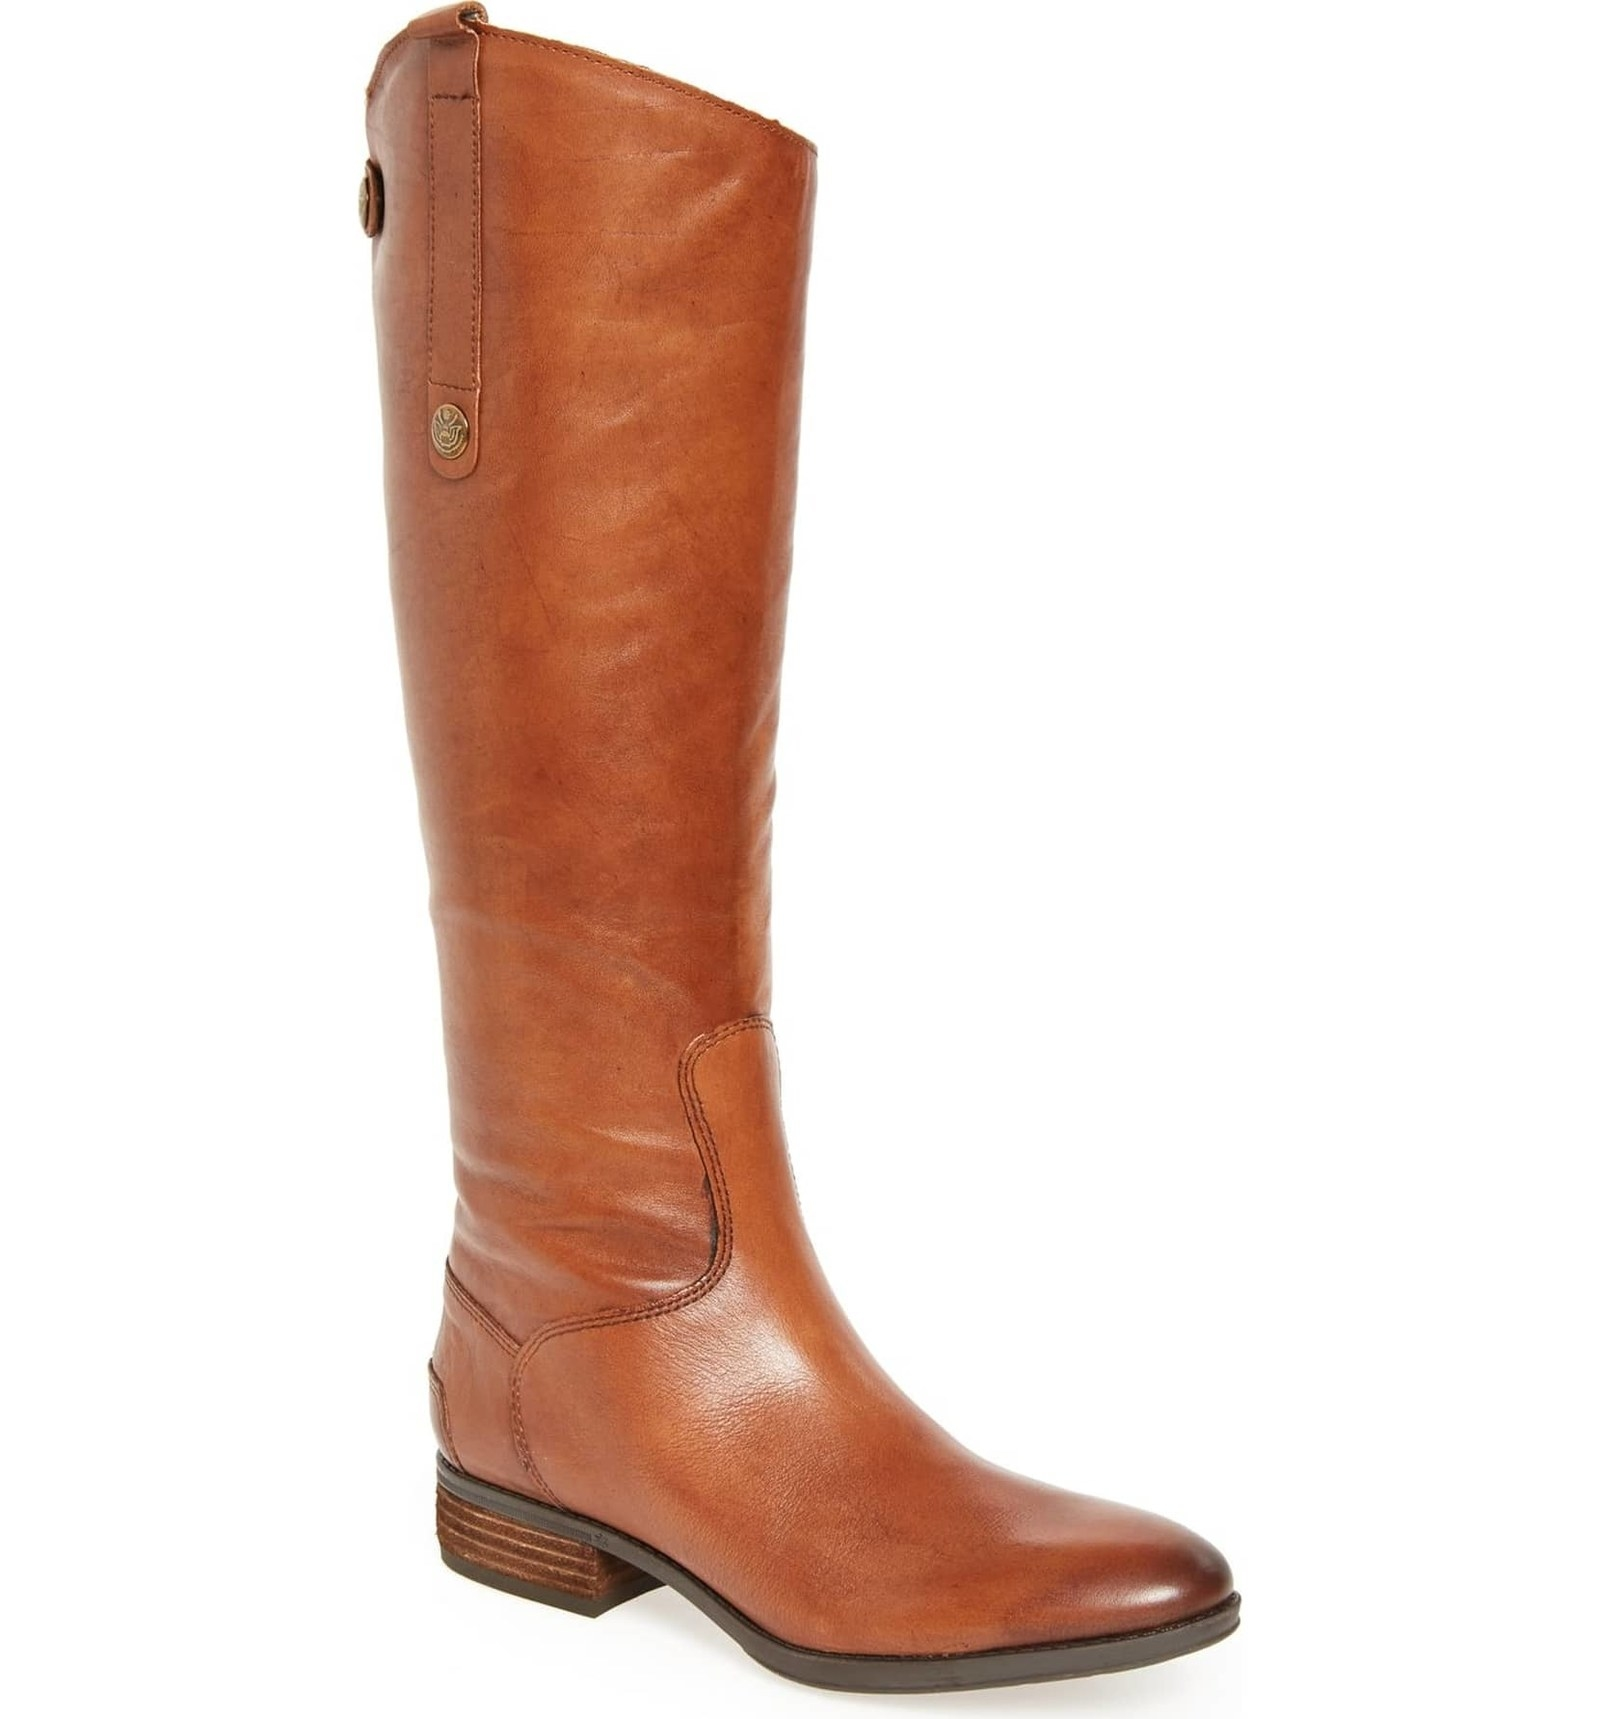 ce13dd4c8a73c Knee-high leather boots, available in both regular and wide calf sizes, to  instantly become your new favorite pair of boots — everyone can use a  classic, ...